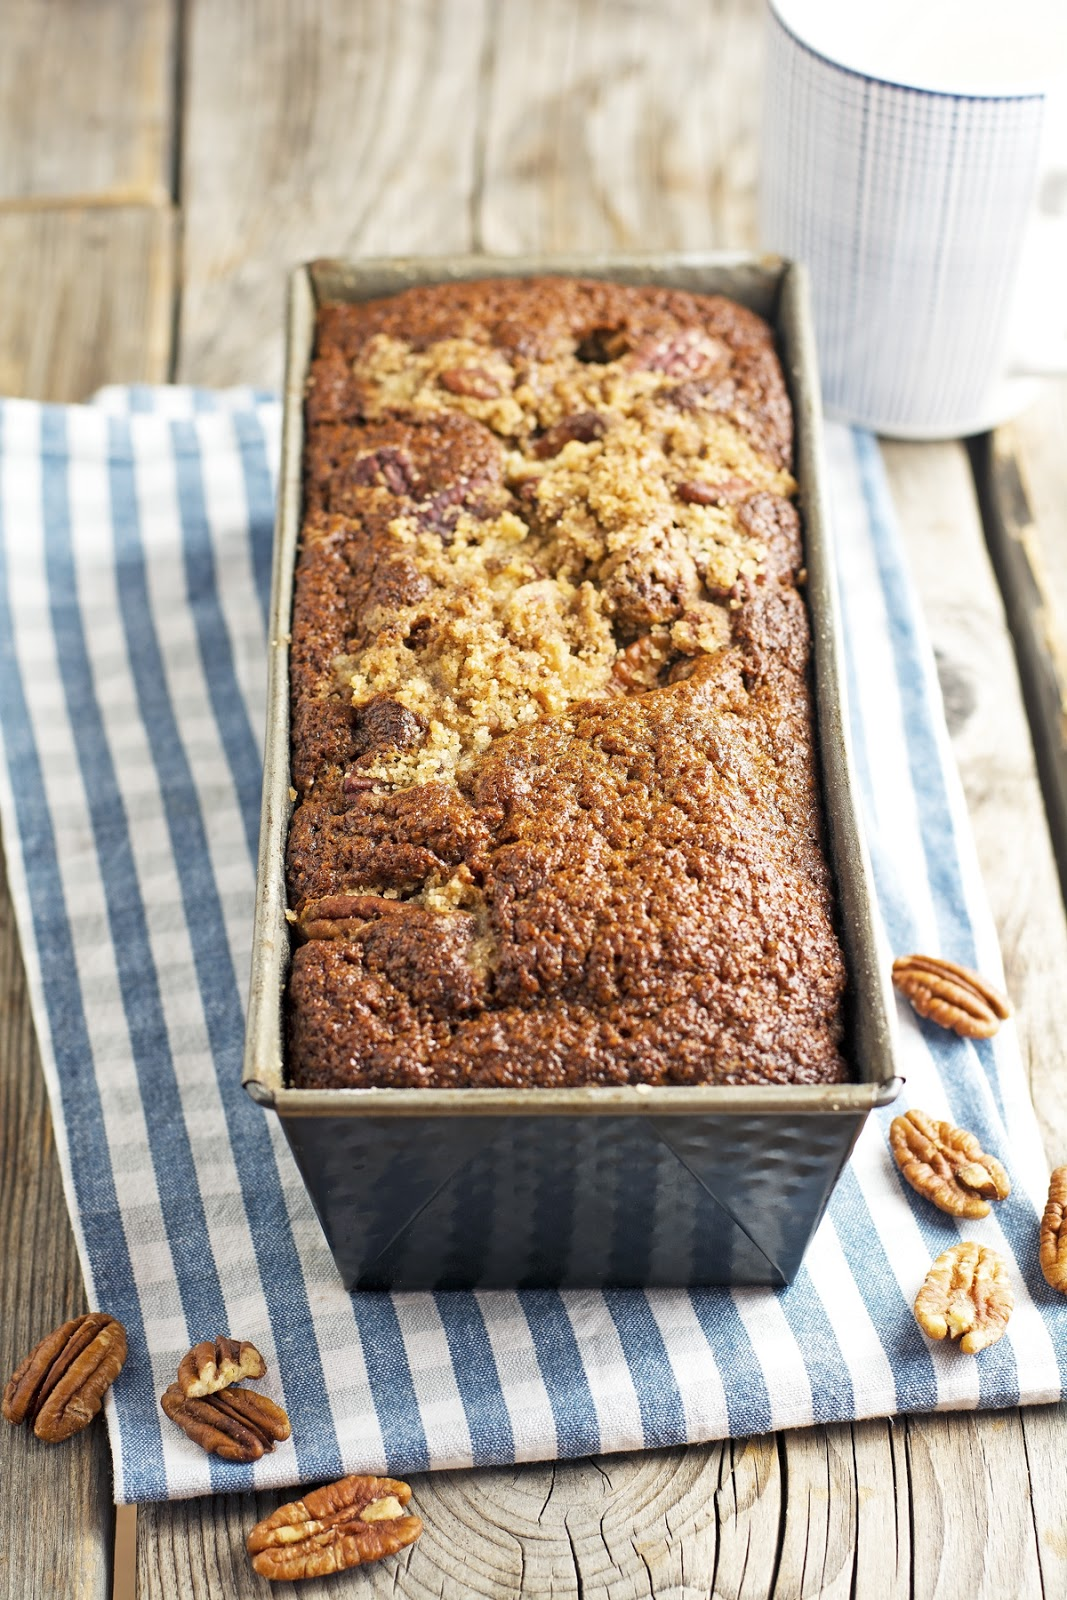 Cinnamon Pecan Crunch Banana Bread